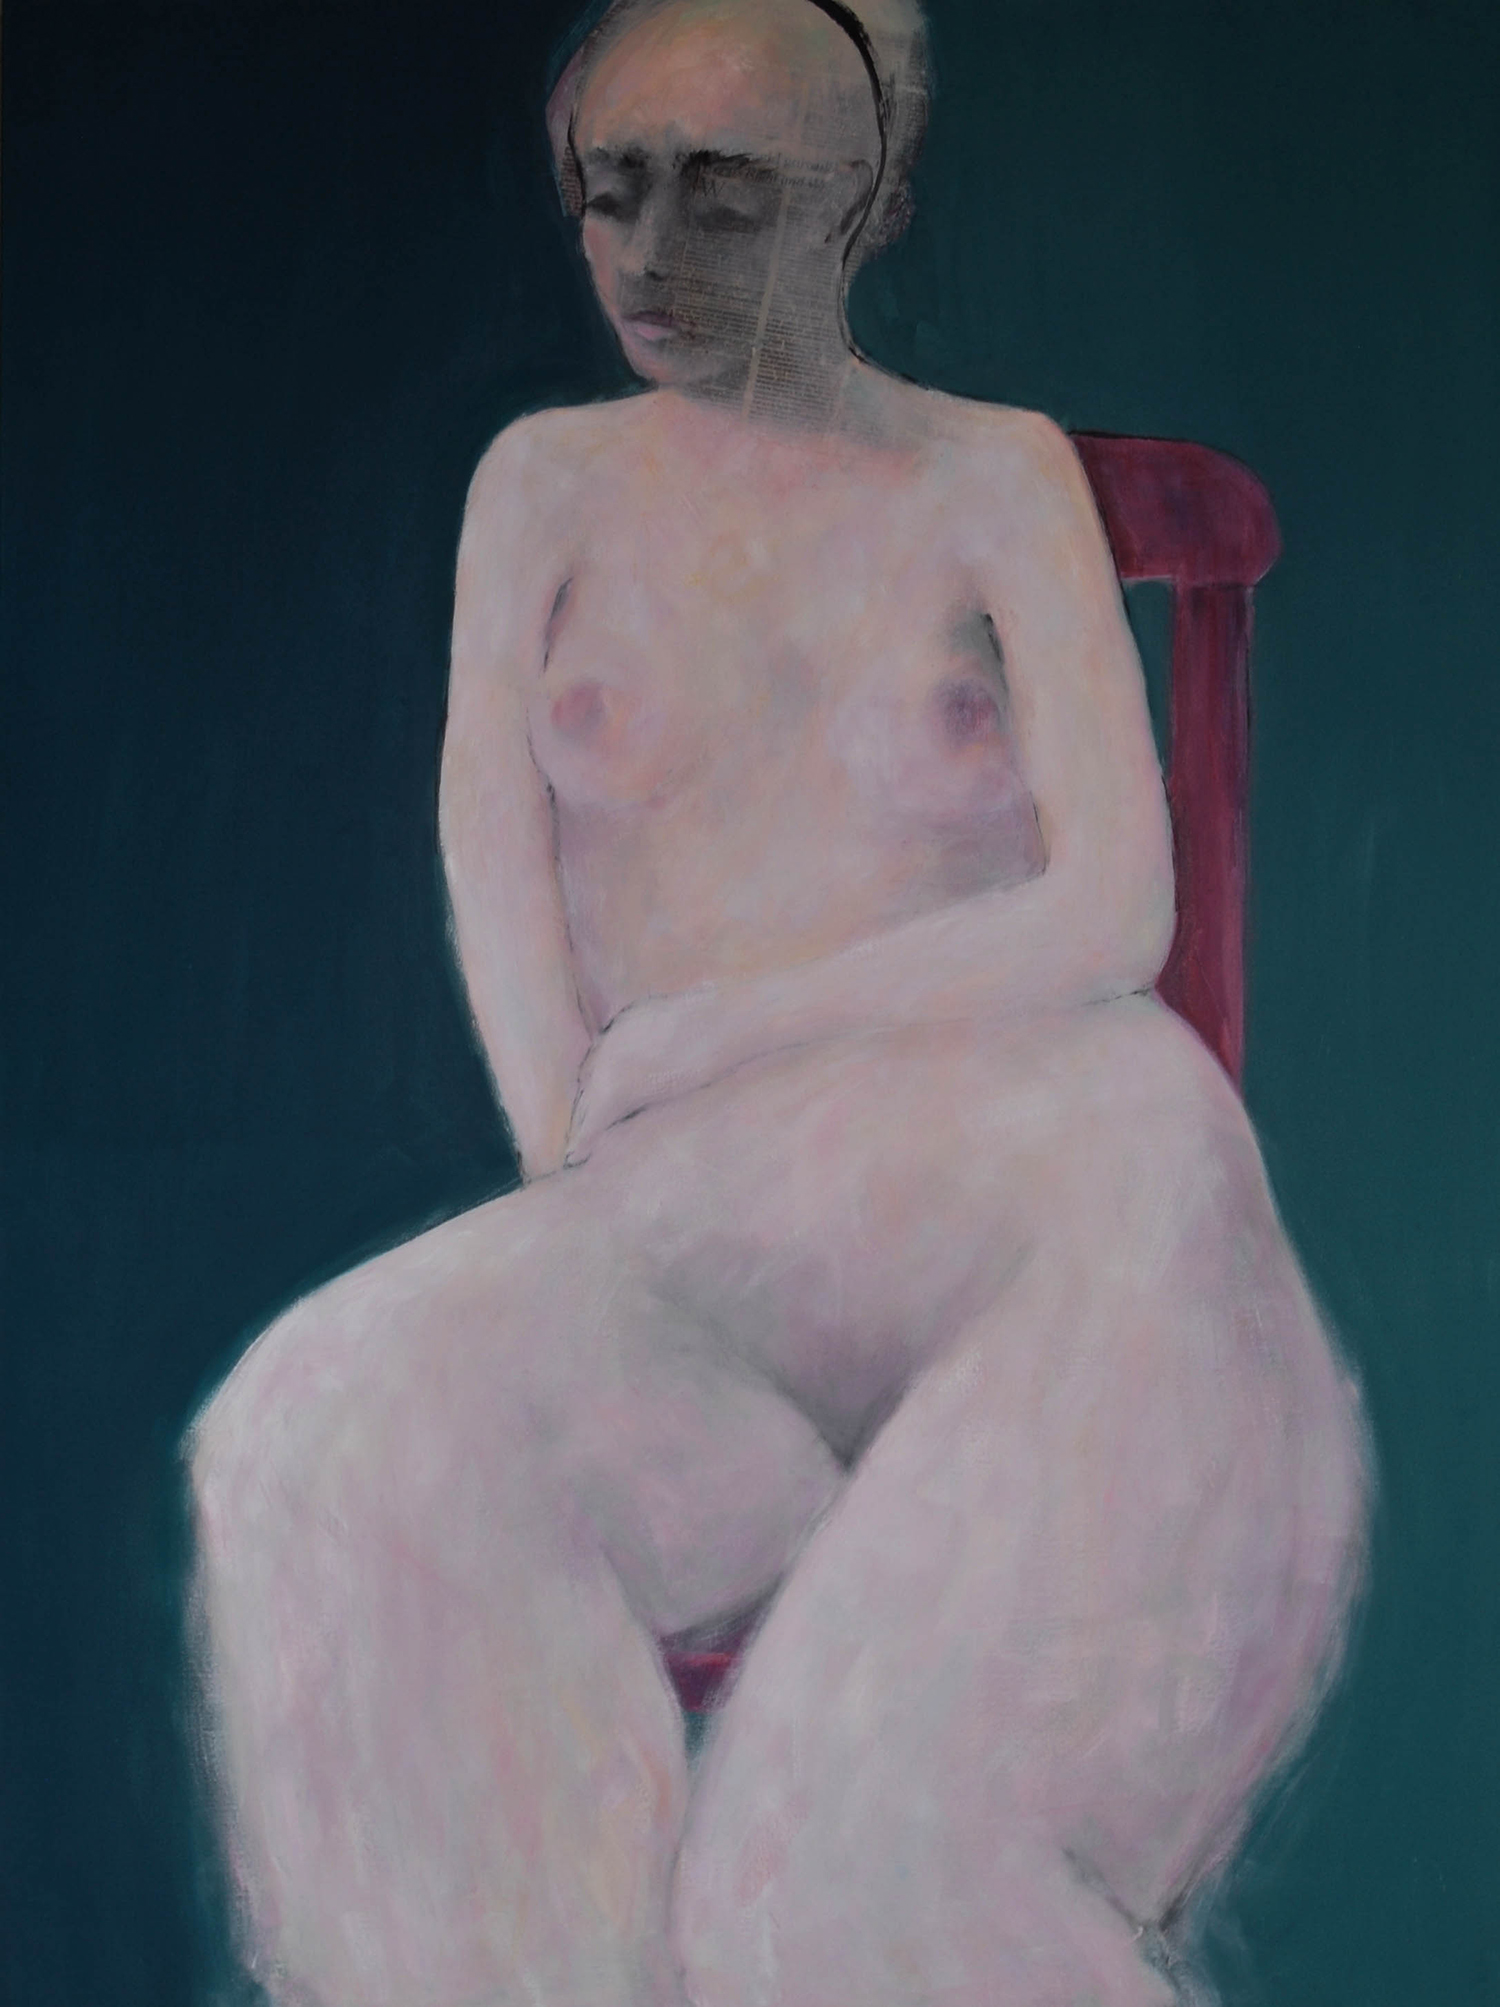 WOMAN ON A RED CHAIR